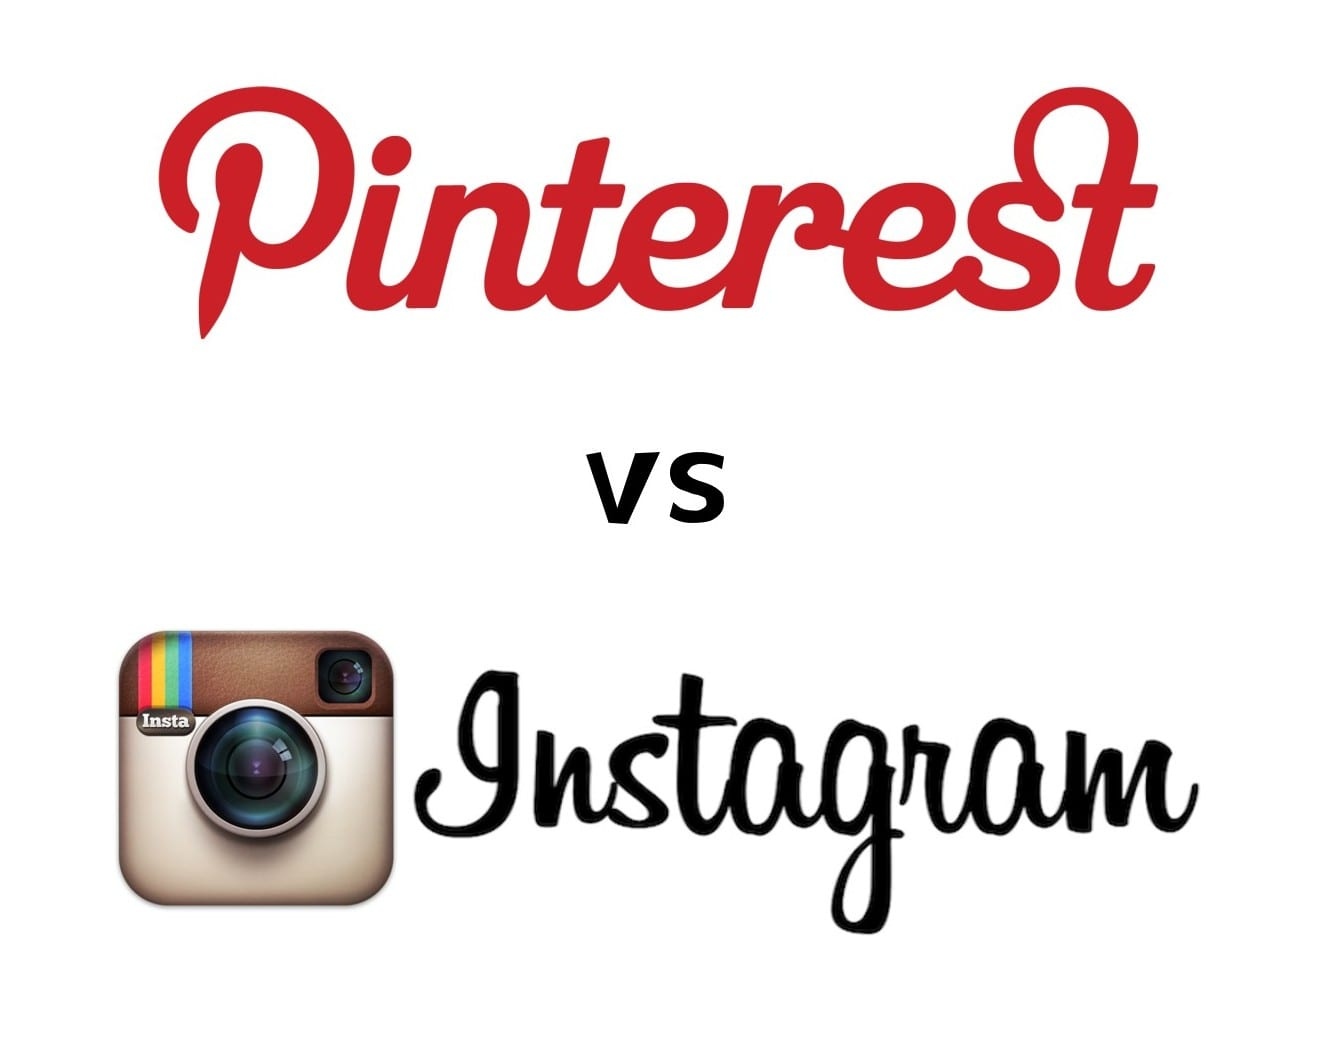 caf051a6764 Pinterest vs. Instagram - Which Is Better? | ReadyCloud